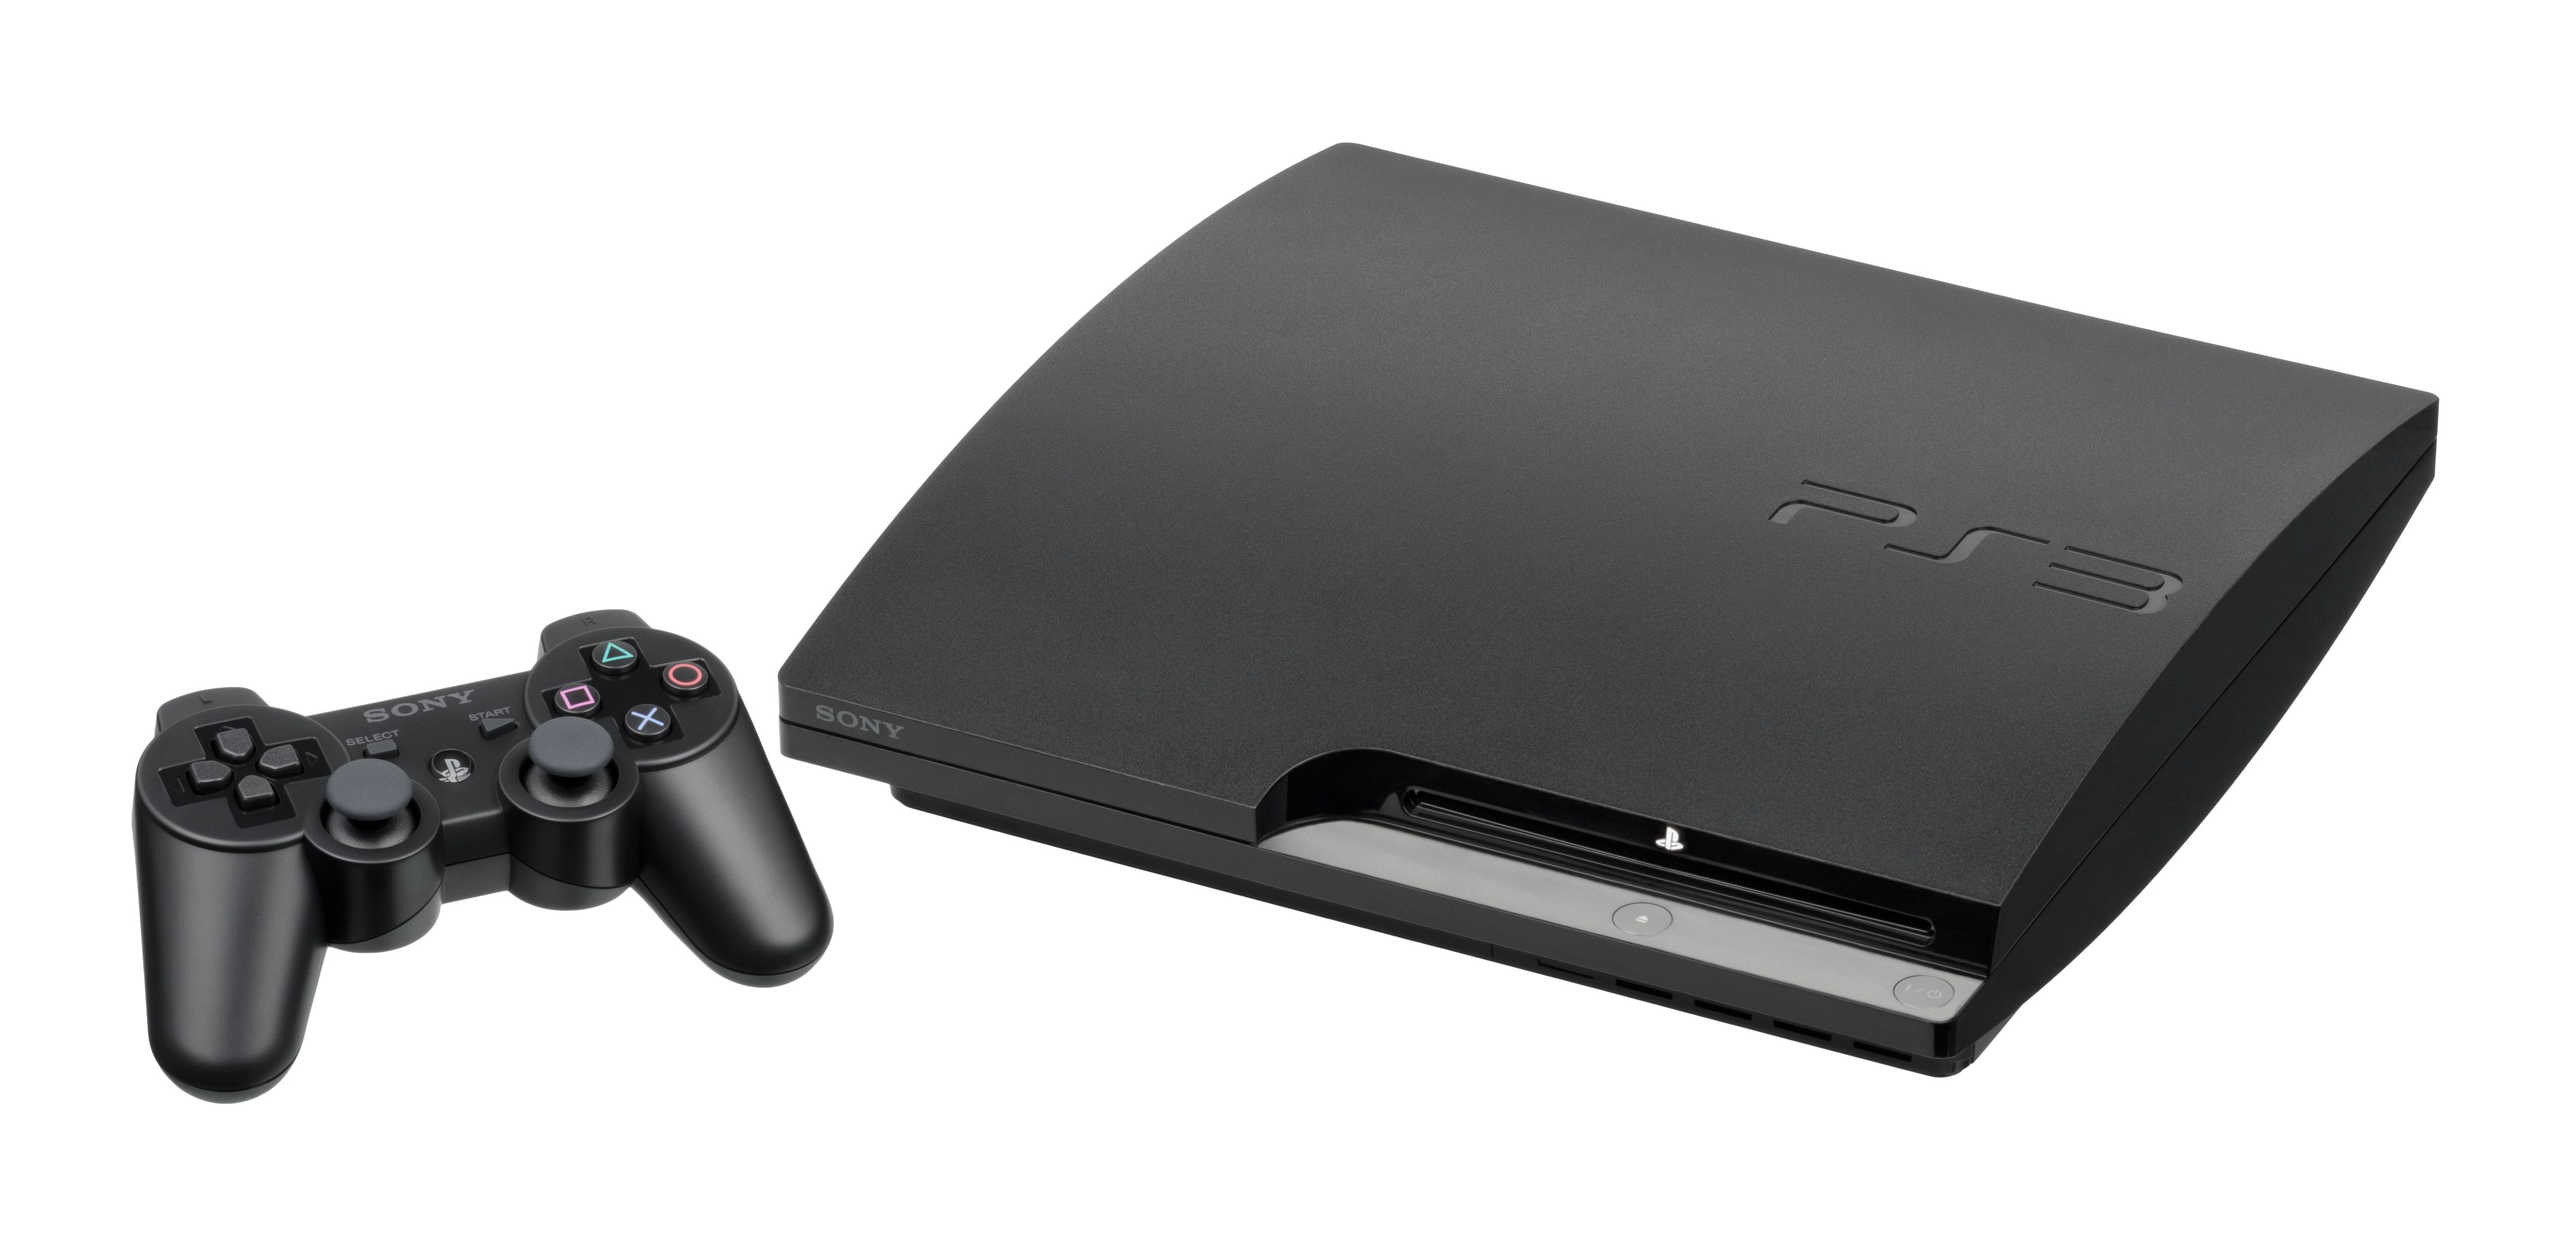 Guide to the Wireless Support Provided By the Sony PS3